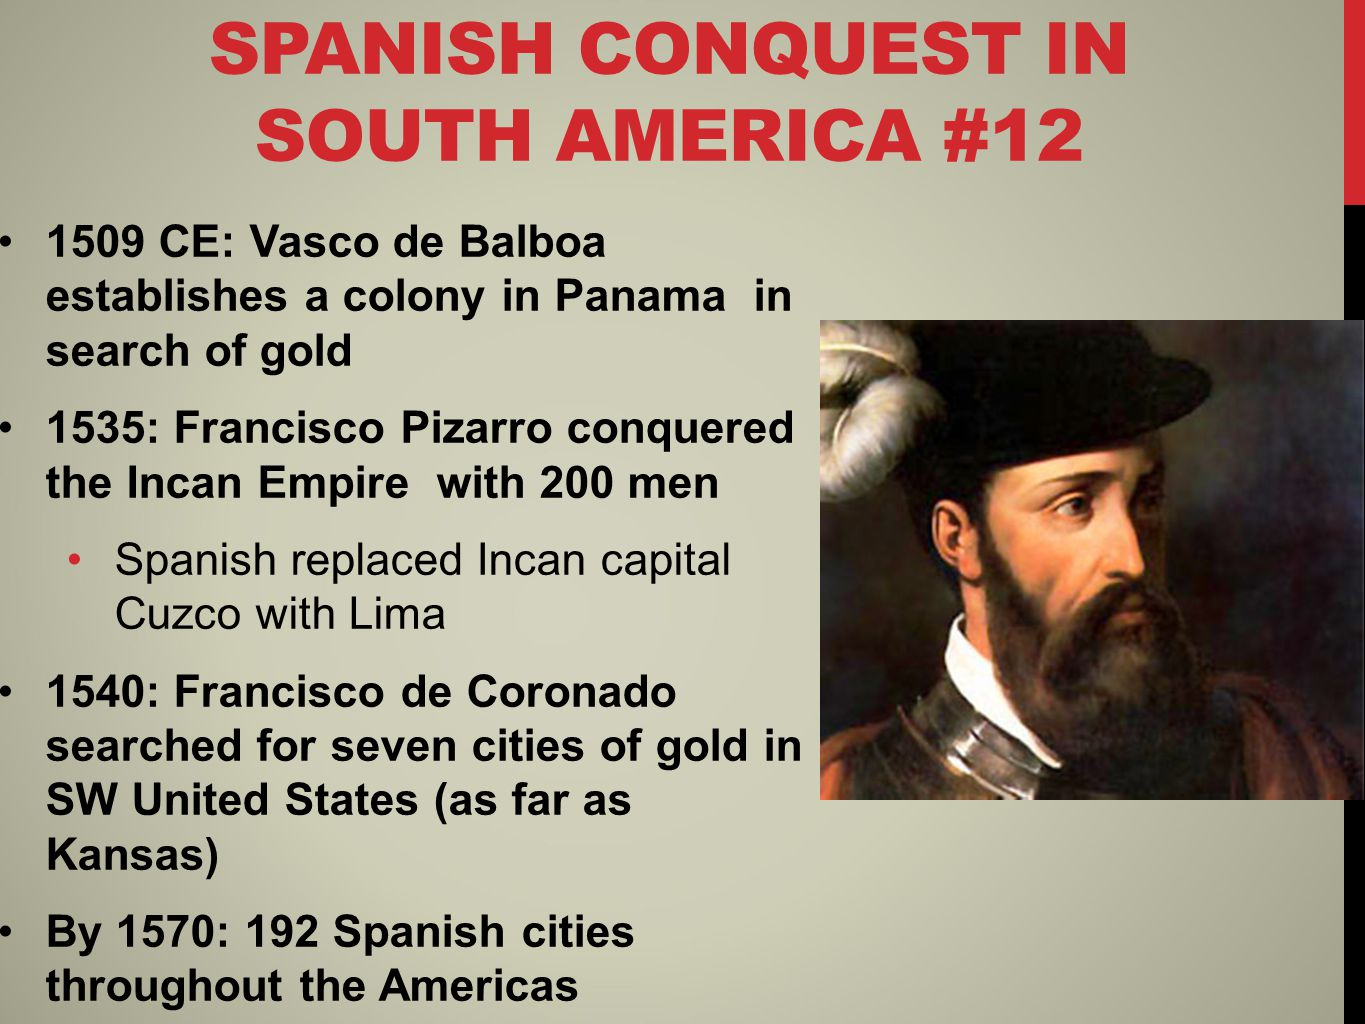 QUICK REVIEW QUESTION WHAT AIDED CORTÉS IN HIS CONQUEST OF THE AZTECS? DESCRIBE THE CONQUISTADORS.